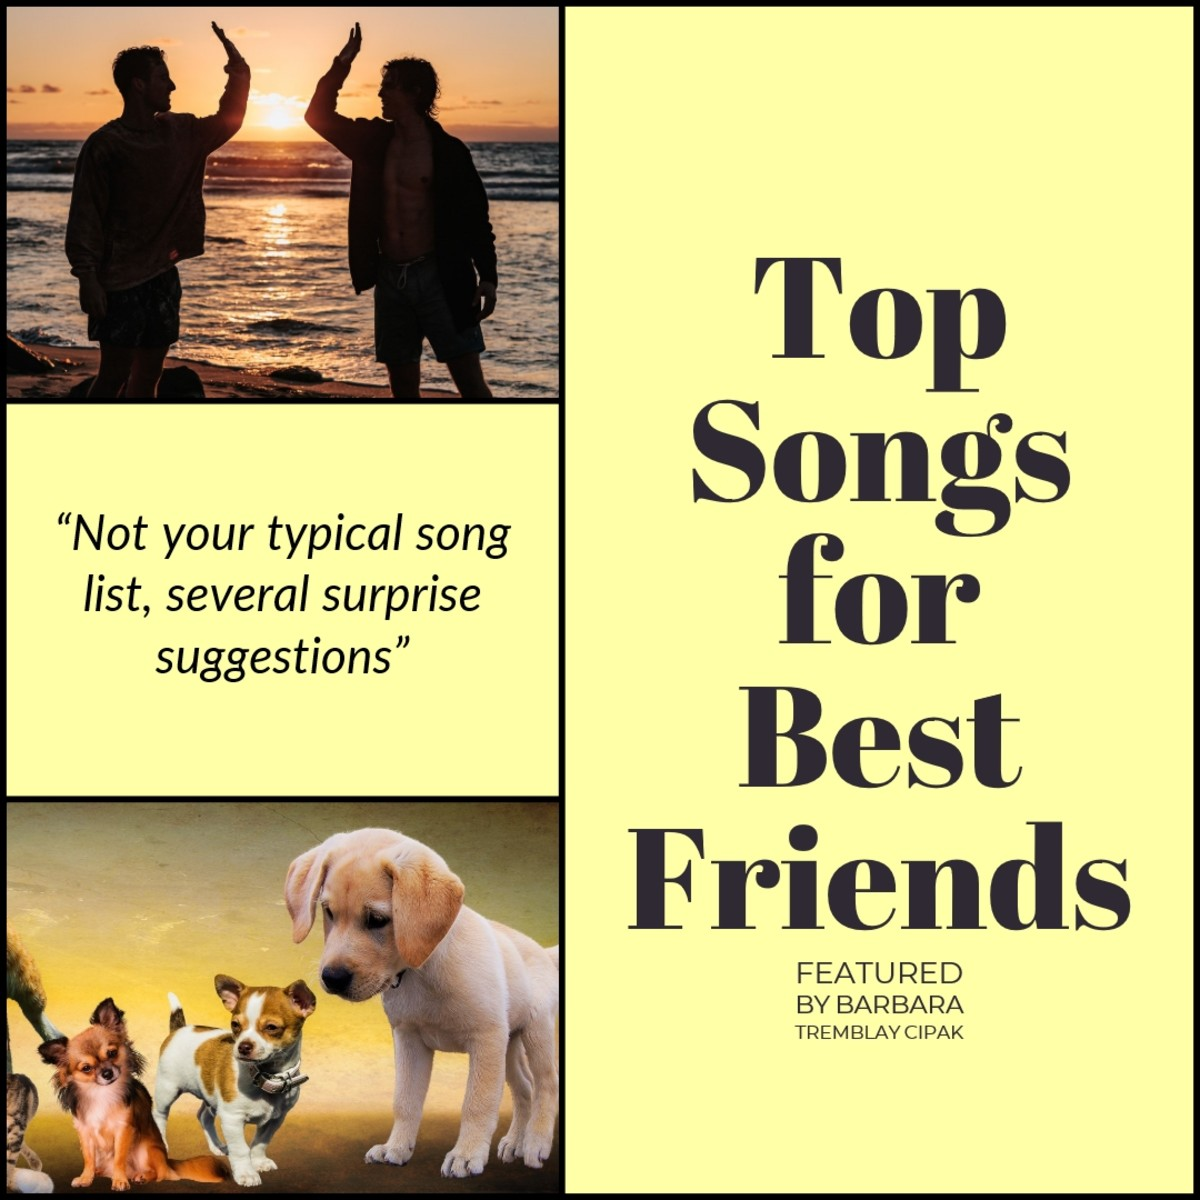 Top songs for best friends featured. Not your typical best friends playlist. A few surprise selections featured.